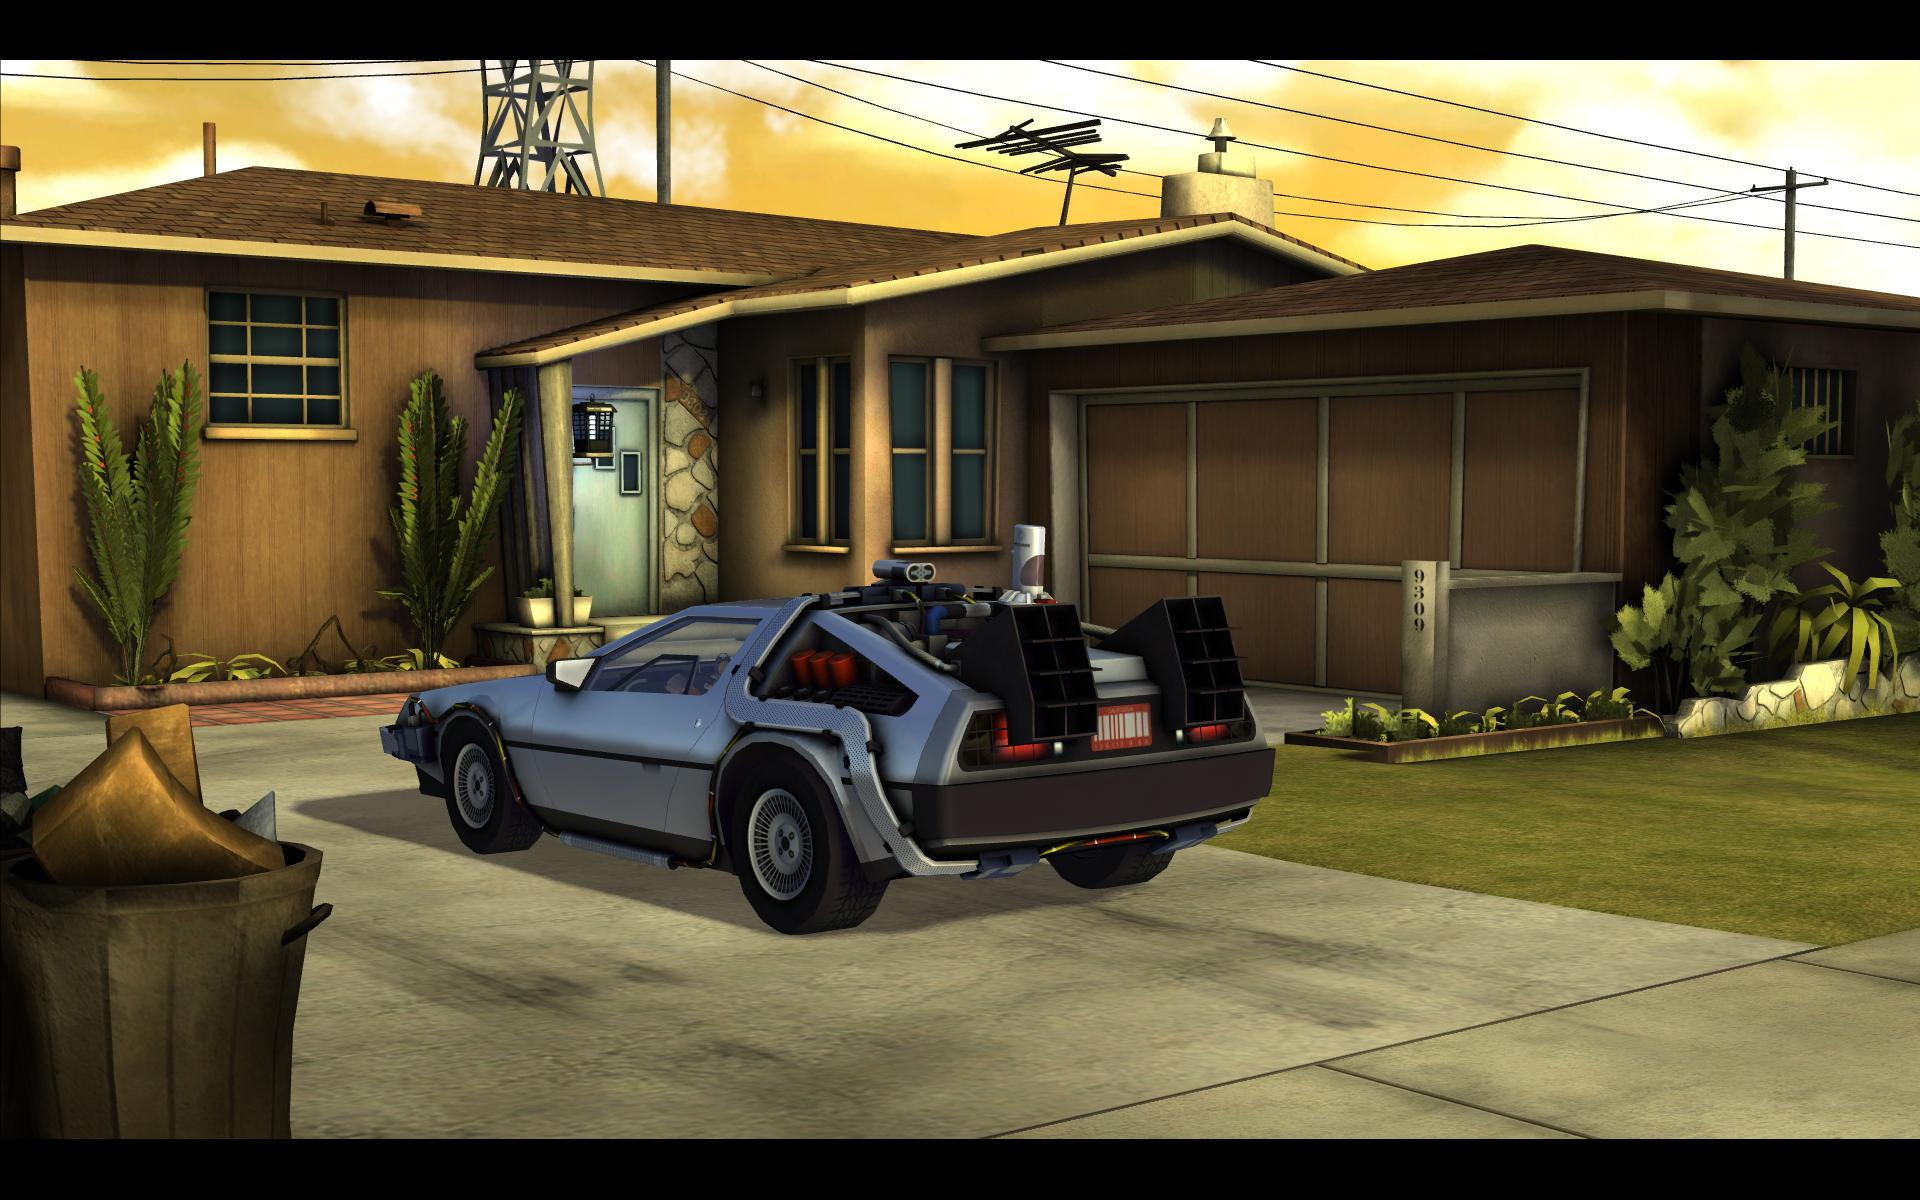 backtothefuture102-2011-02-19-02-06-58-34